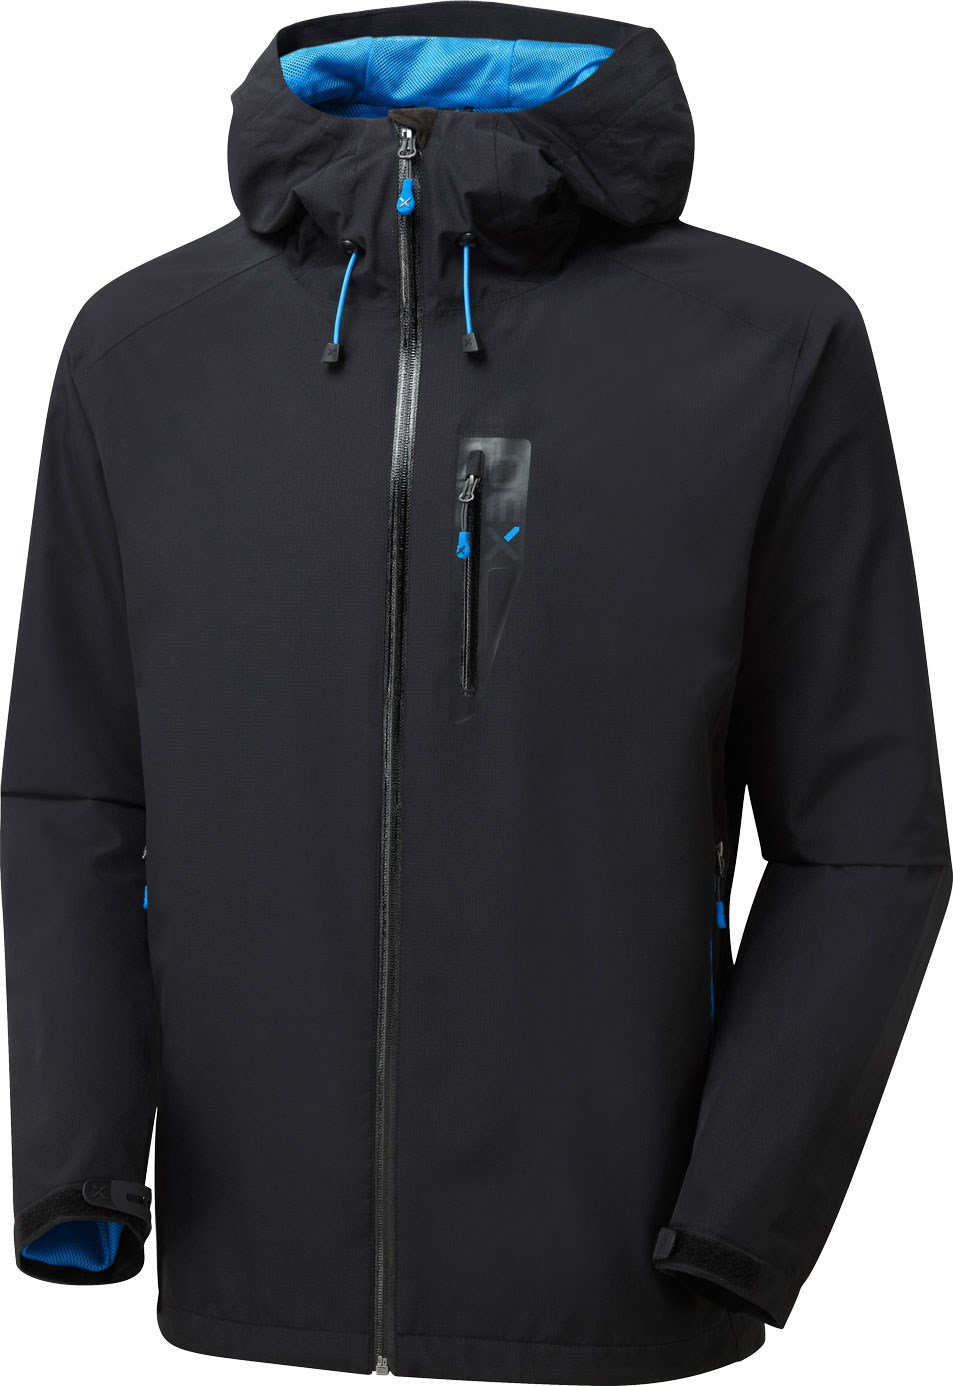 OEX Roq 2-Layer Men's Waterproof Jacket | GO Outdoors